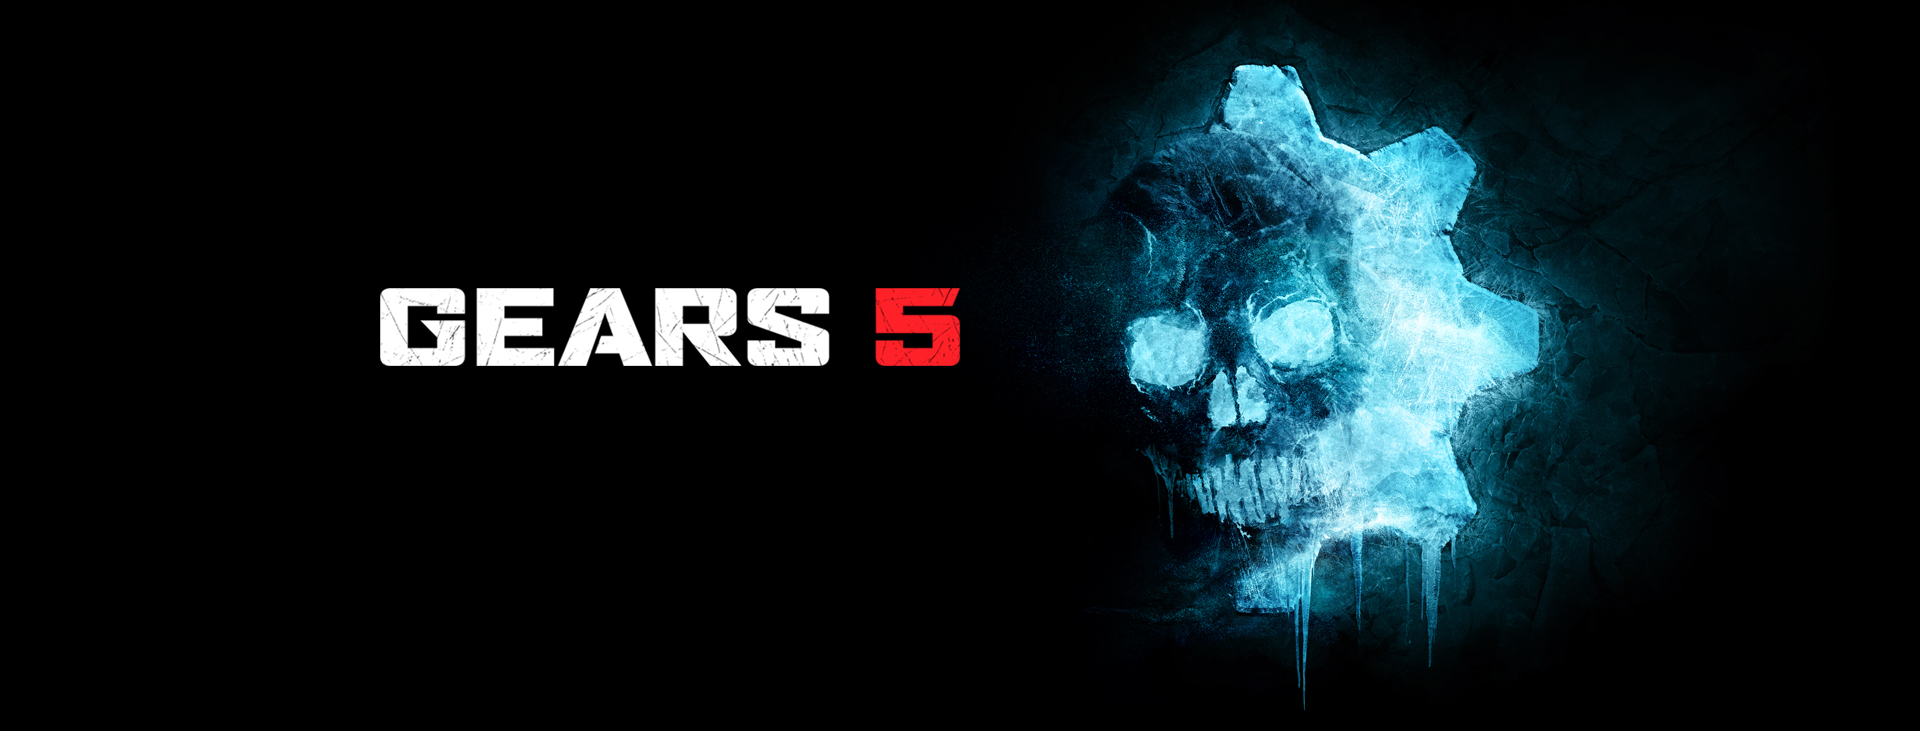 TEST : on a terminé Gears 5 en coop blog jeux video lageekroom The Coalition